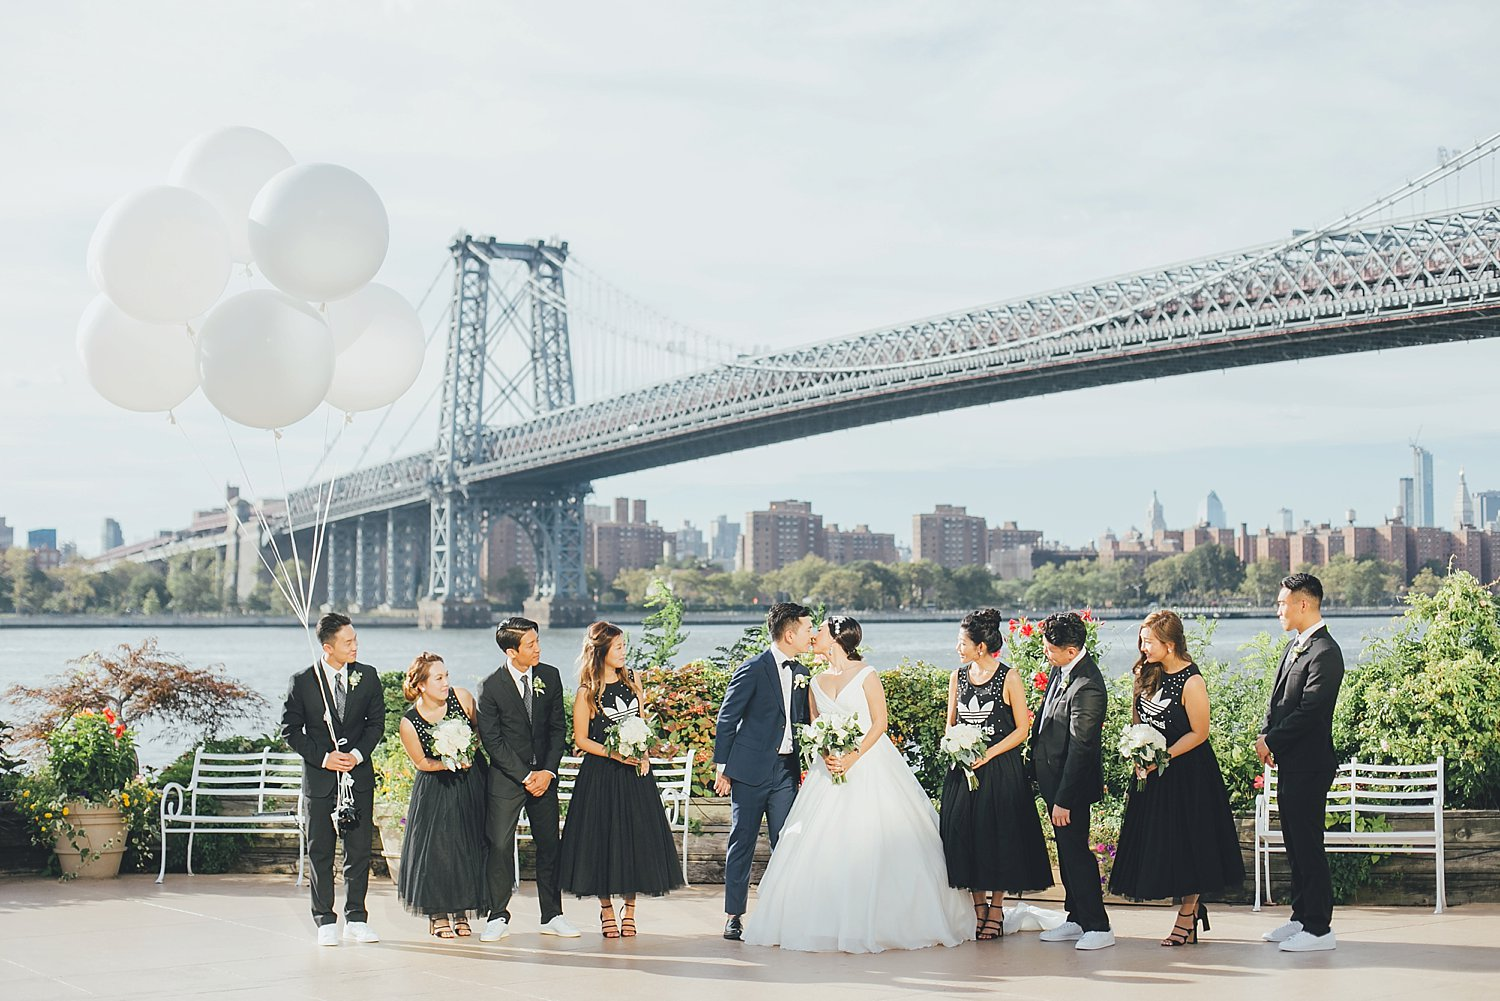 nyc-wedding-photography-nj-tri-state-cinematography-intothestory-by-moo-jae_0355.jpg